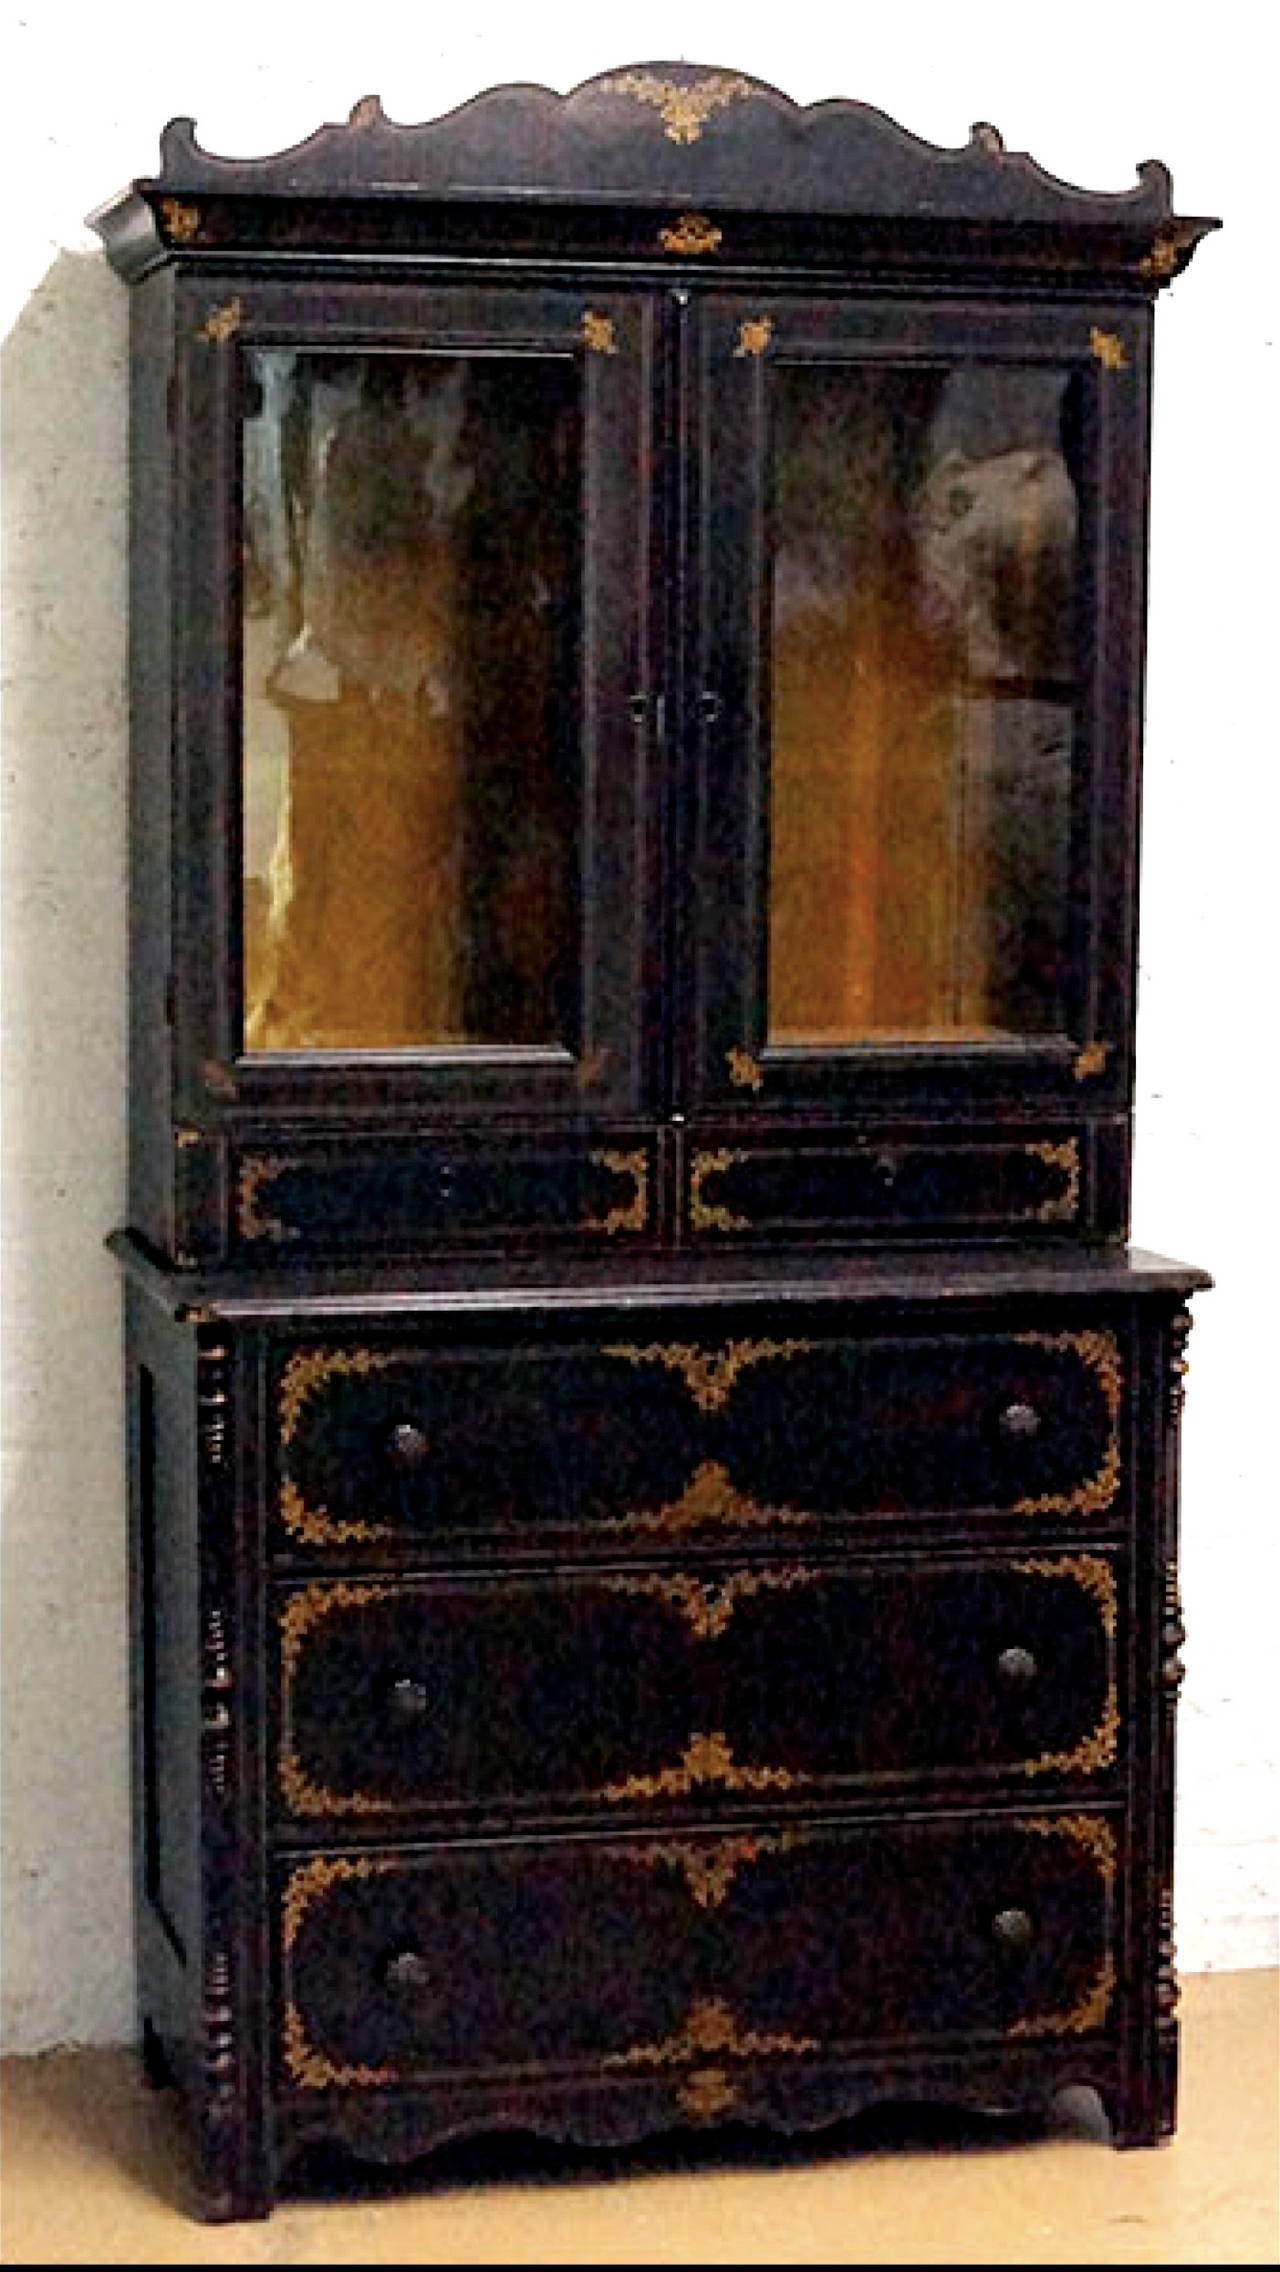 Charming American 19th century cupboard with original paint.